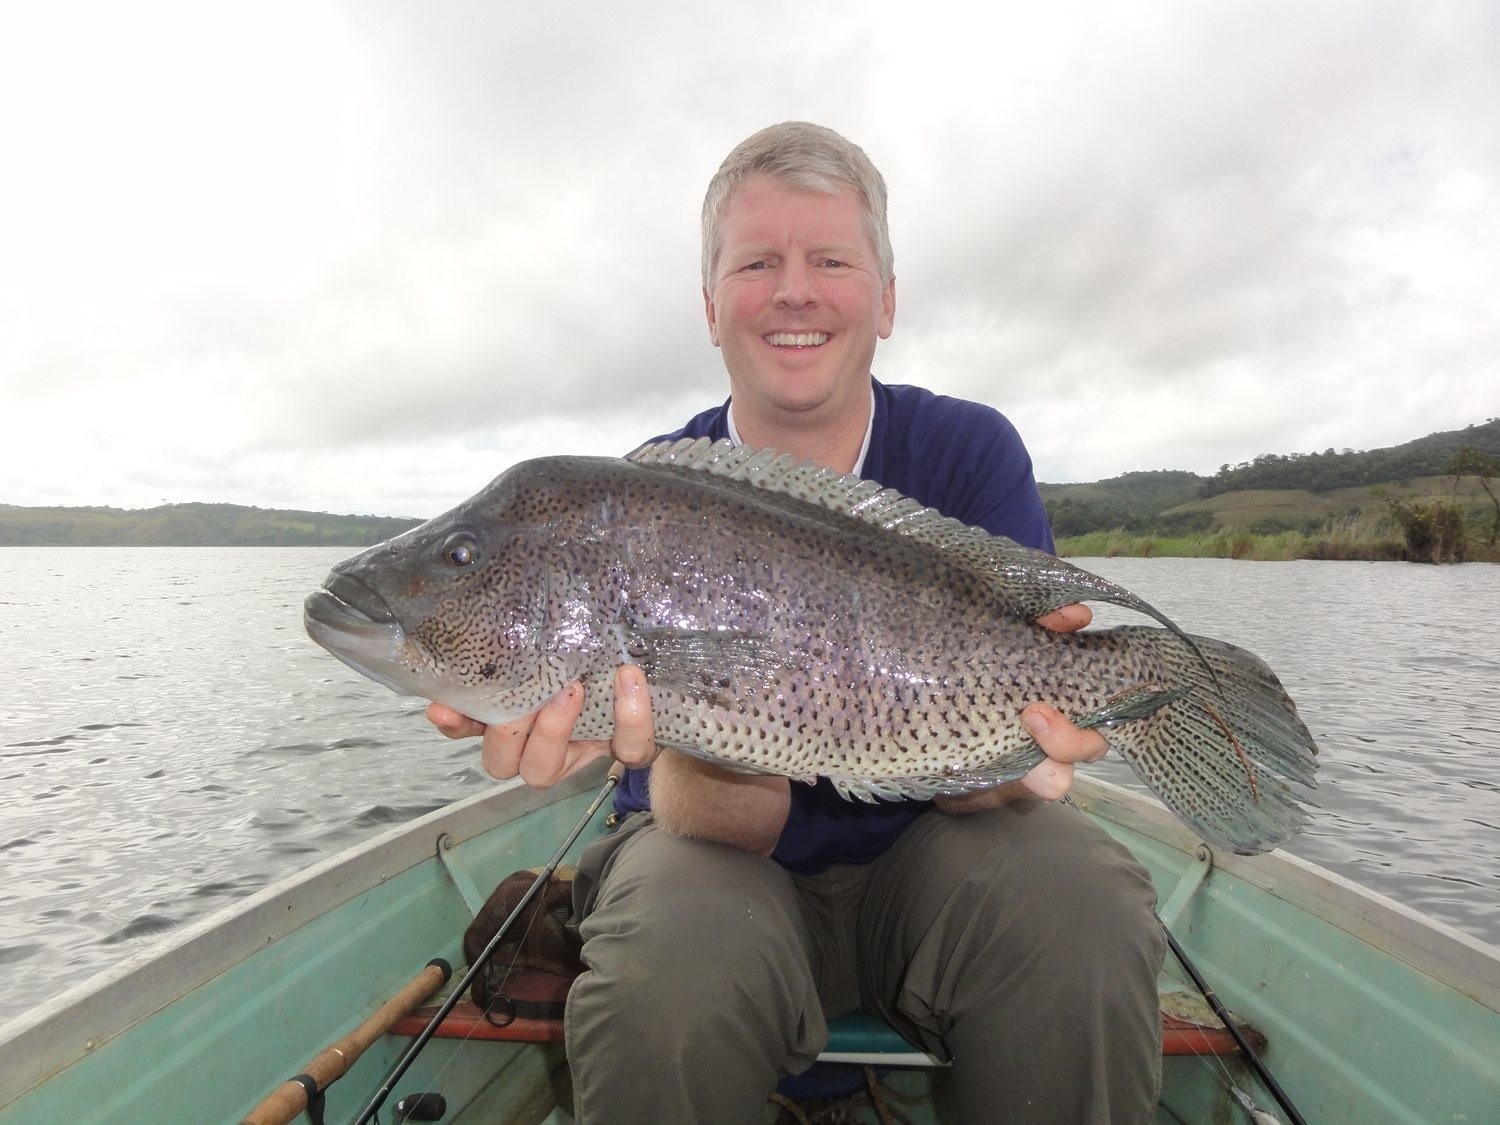 Gerry holding a fine Lake Coter Guapote